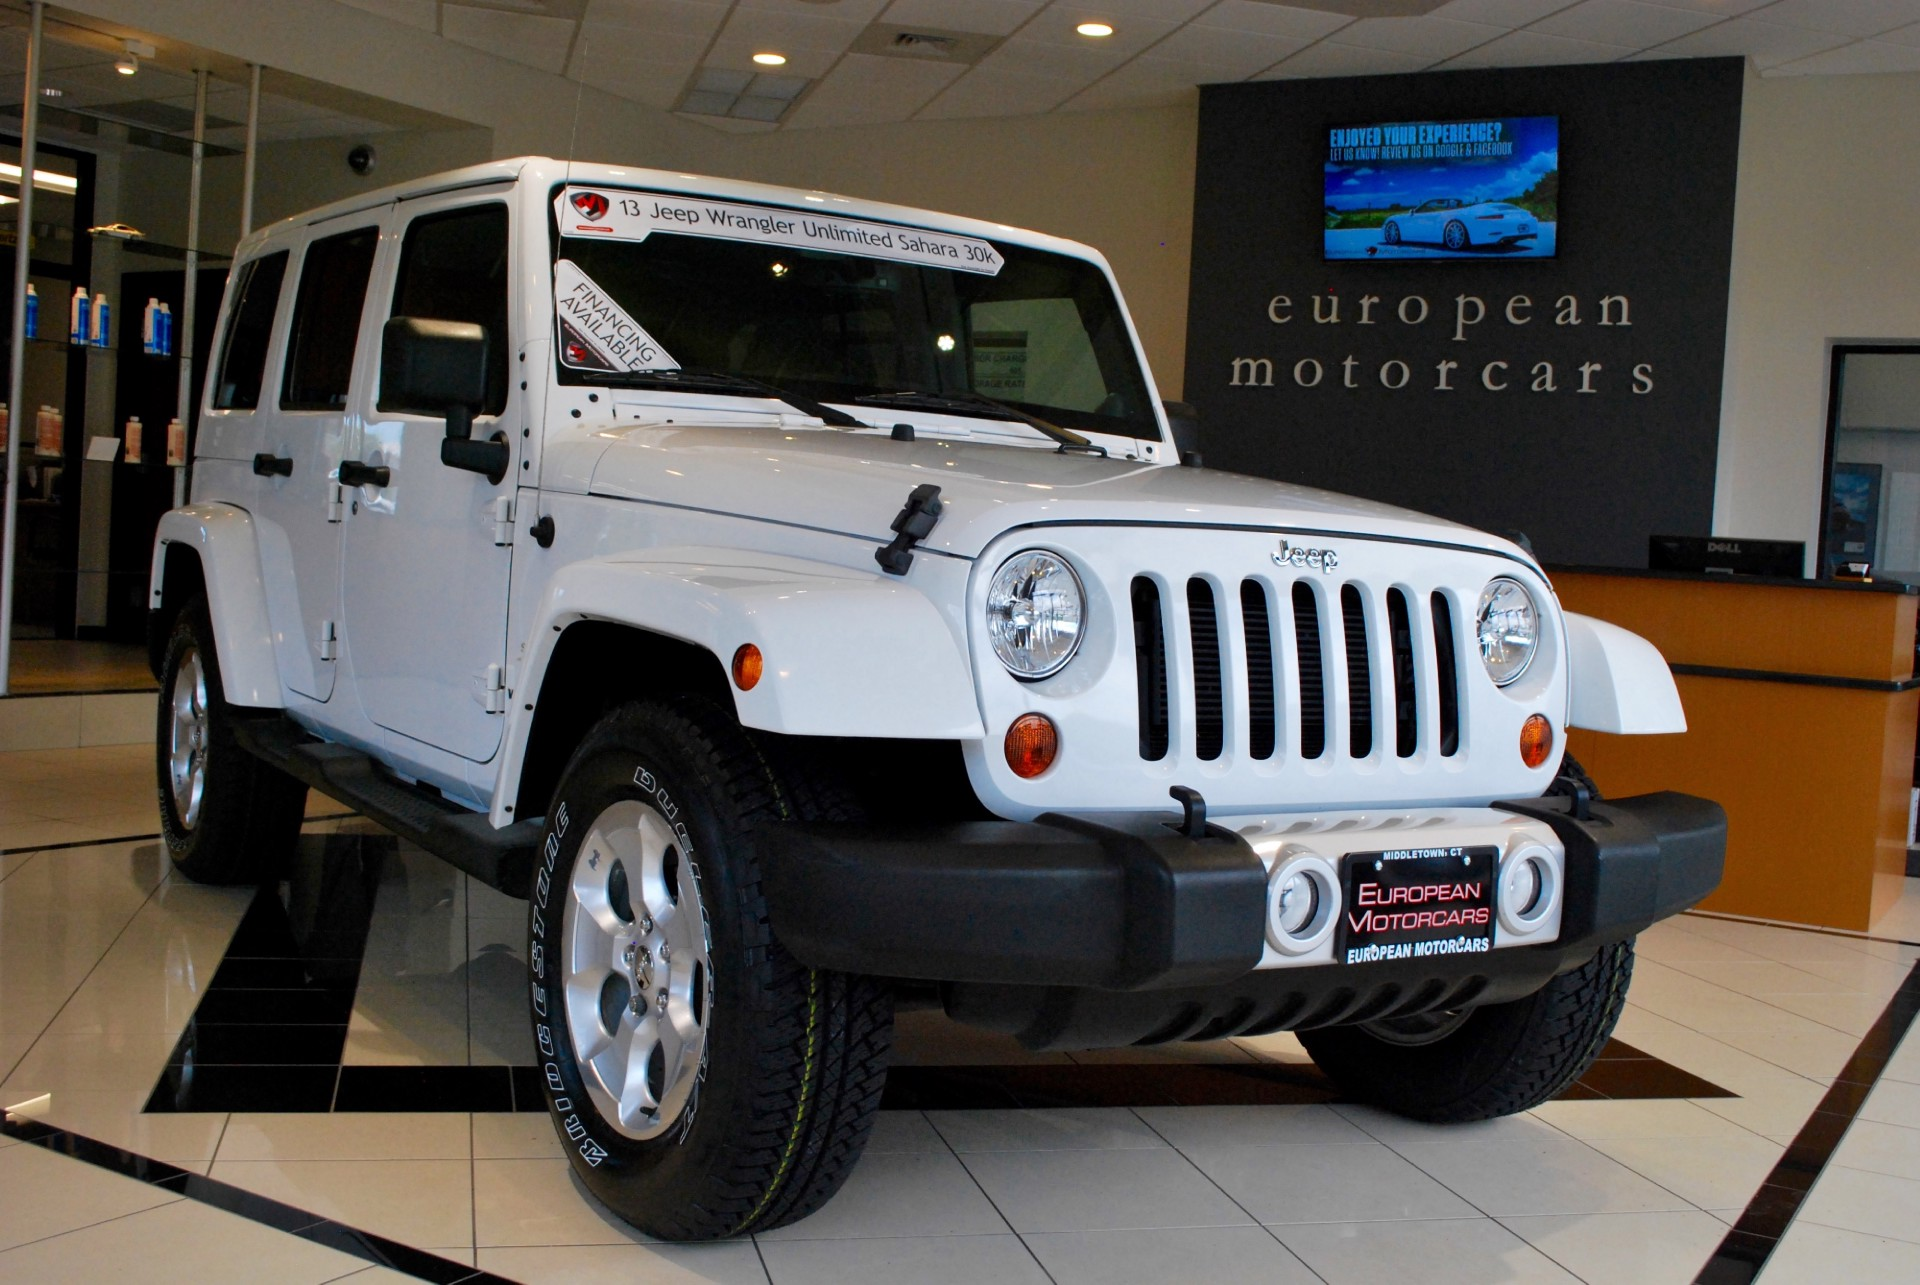 2013 jeep wrangler unlimited sahara for sale near middletown ct ct jeep dealer stock 615358. Black Bedroom Furniture Sets. Home Design Ideas